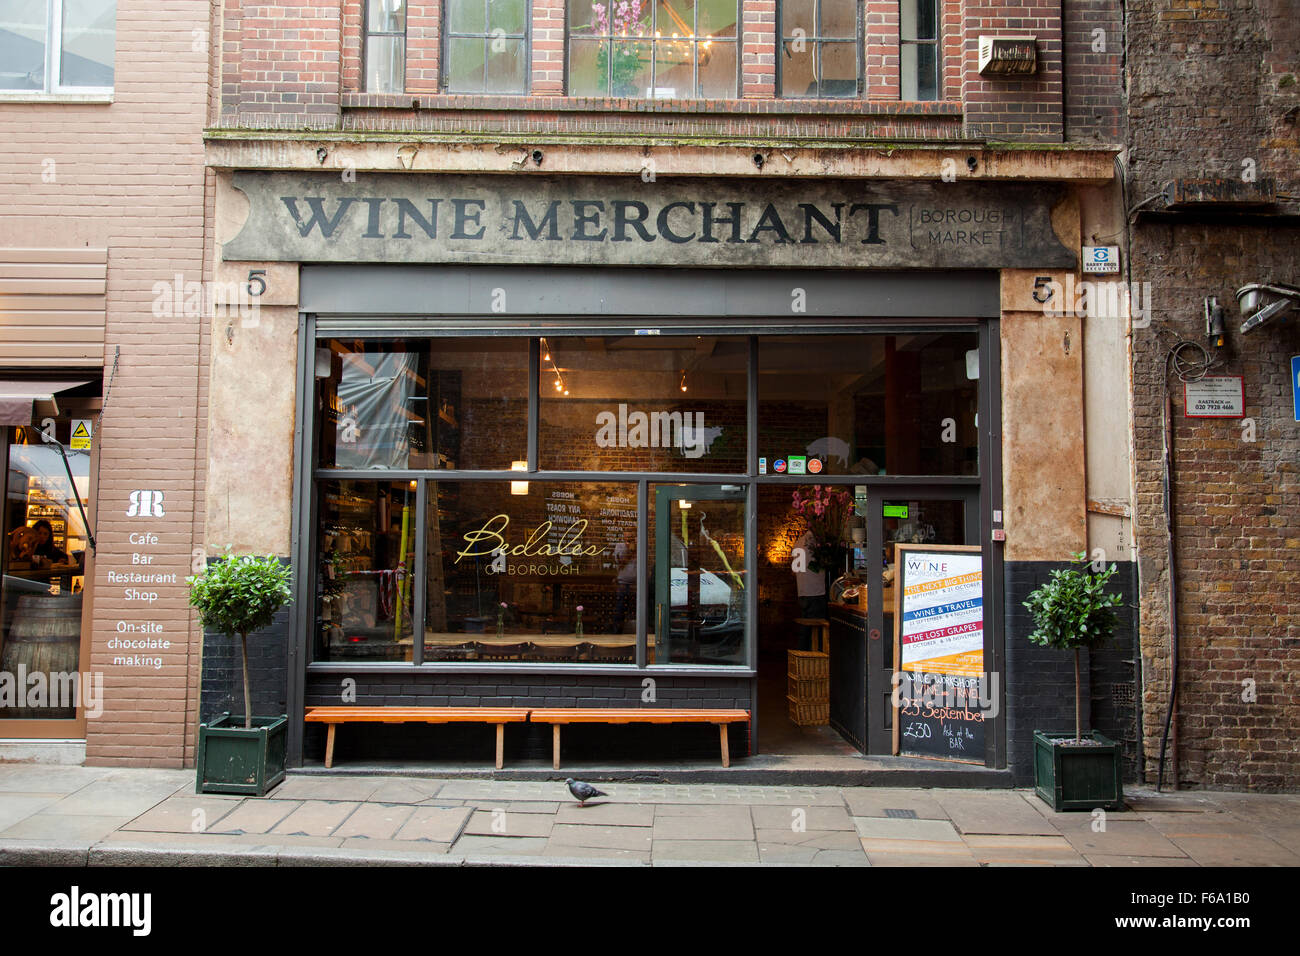 Bedales Wine Merchant, Borough Market, London, England, U.K. - Stock Image